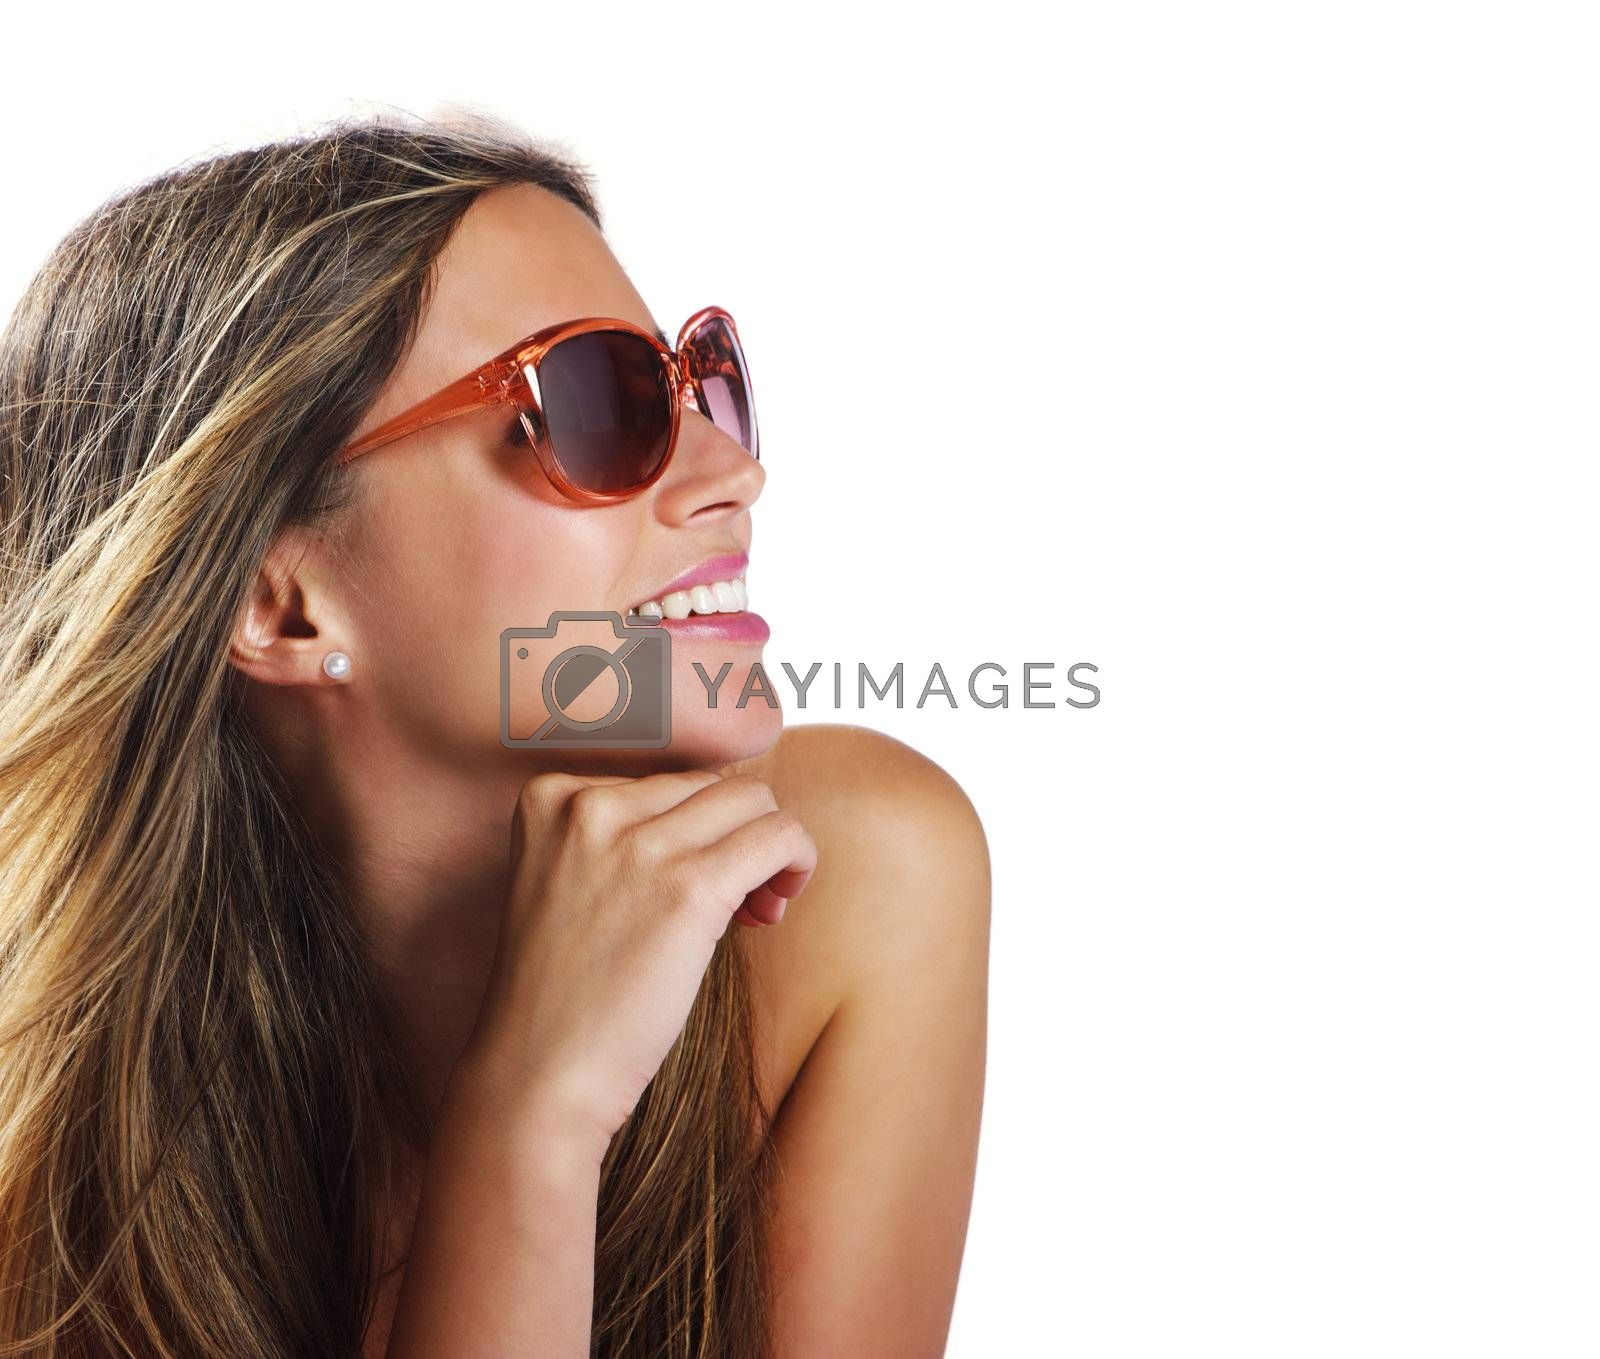 Smiling young woman with sunglasses on white background, copy space